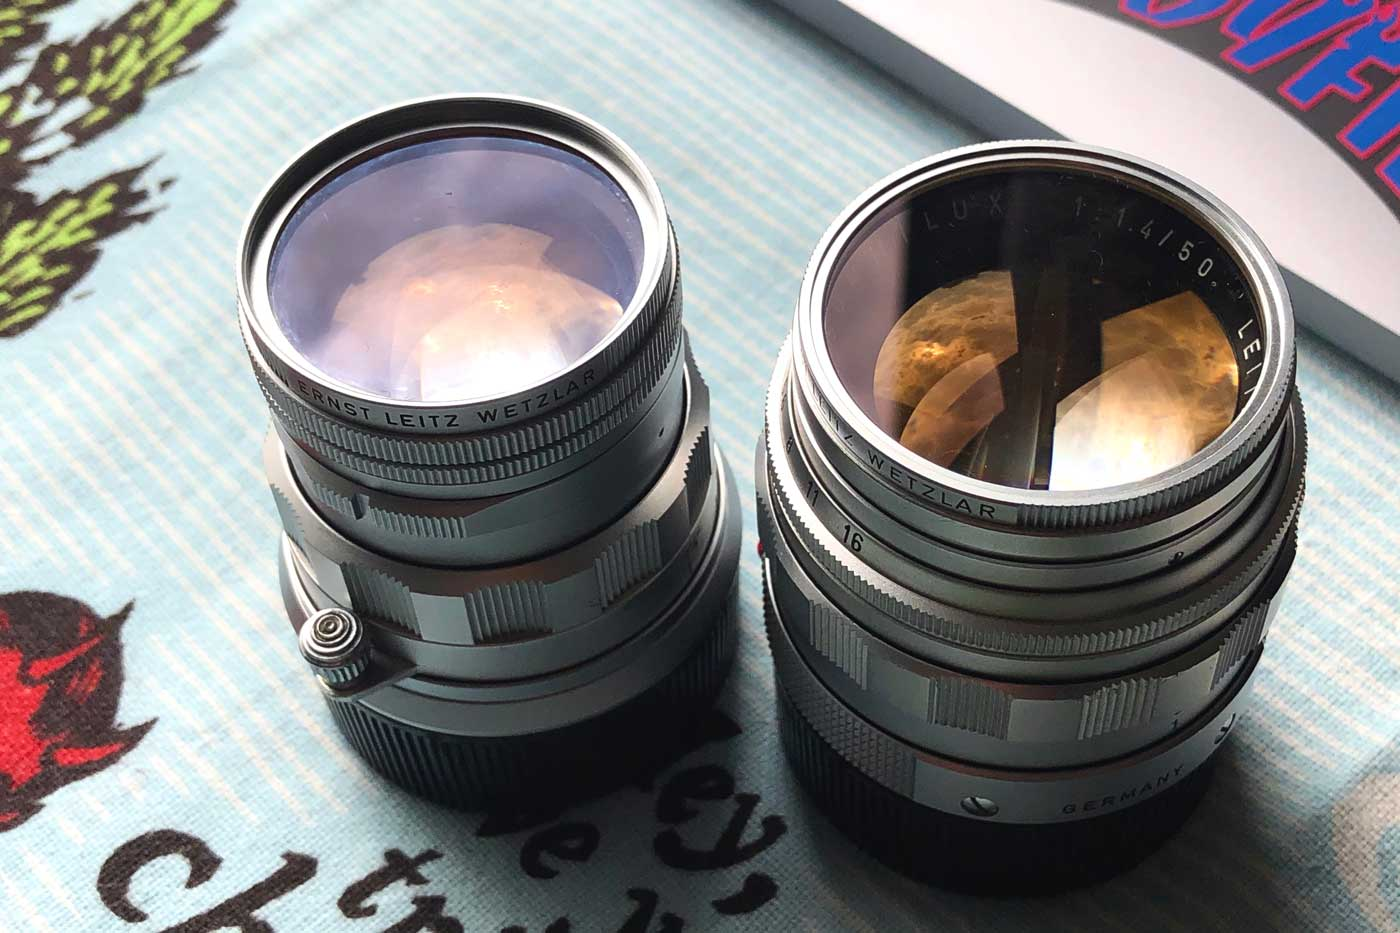 Leica-Summicron-50mm-50-f2-Rigid-Type-2-II-lens-review-colour-coating-lens-barrel-summilux-50mm-f1.4-v2